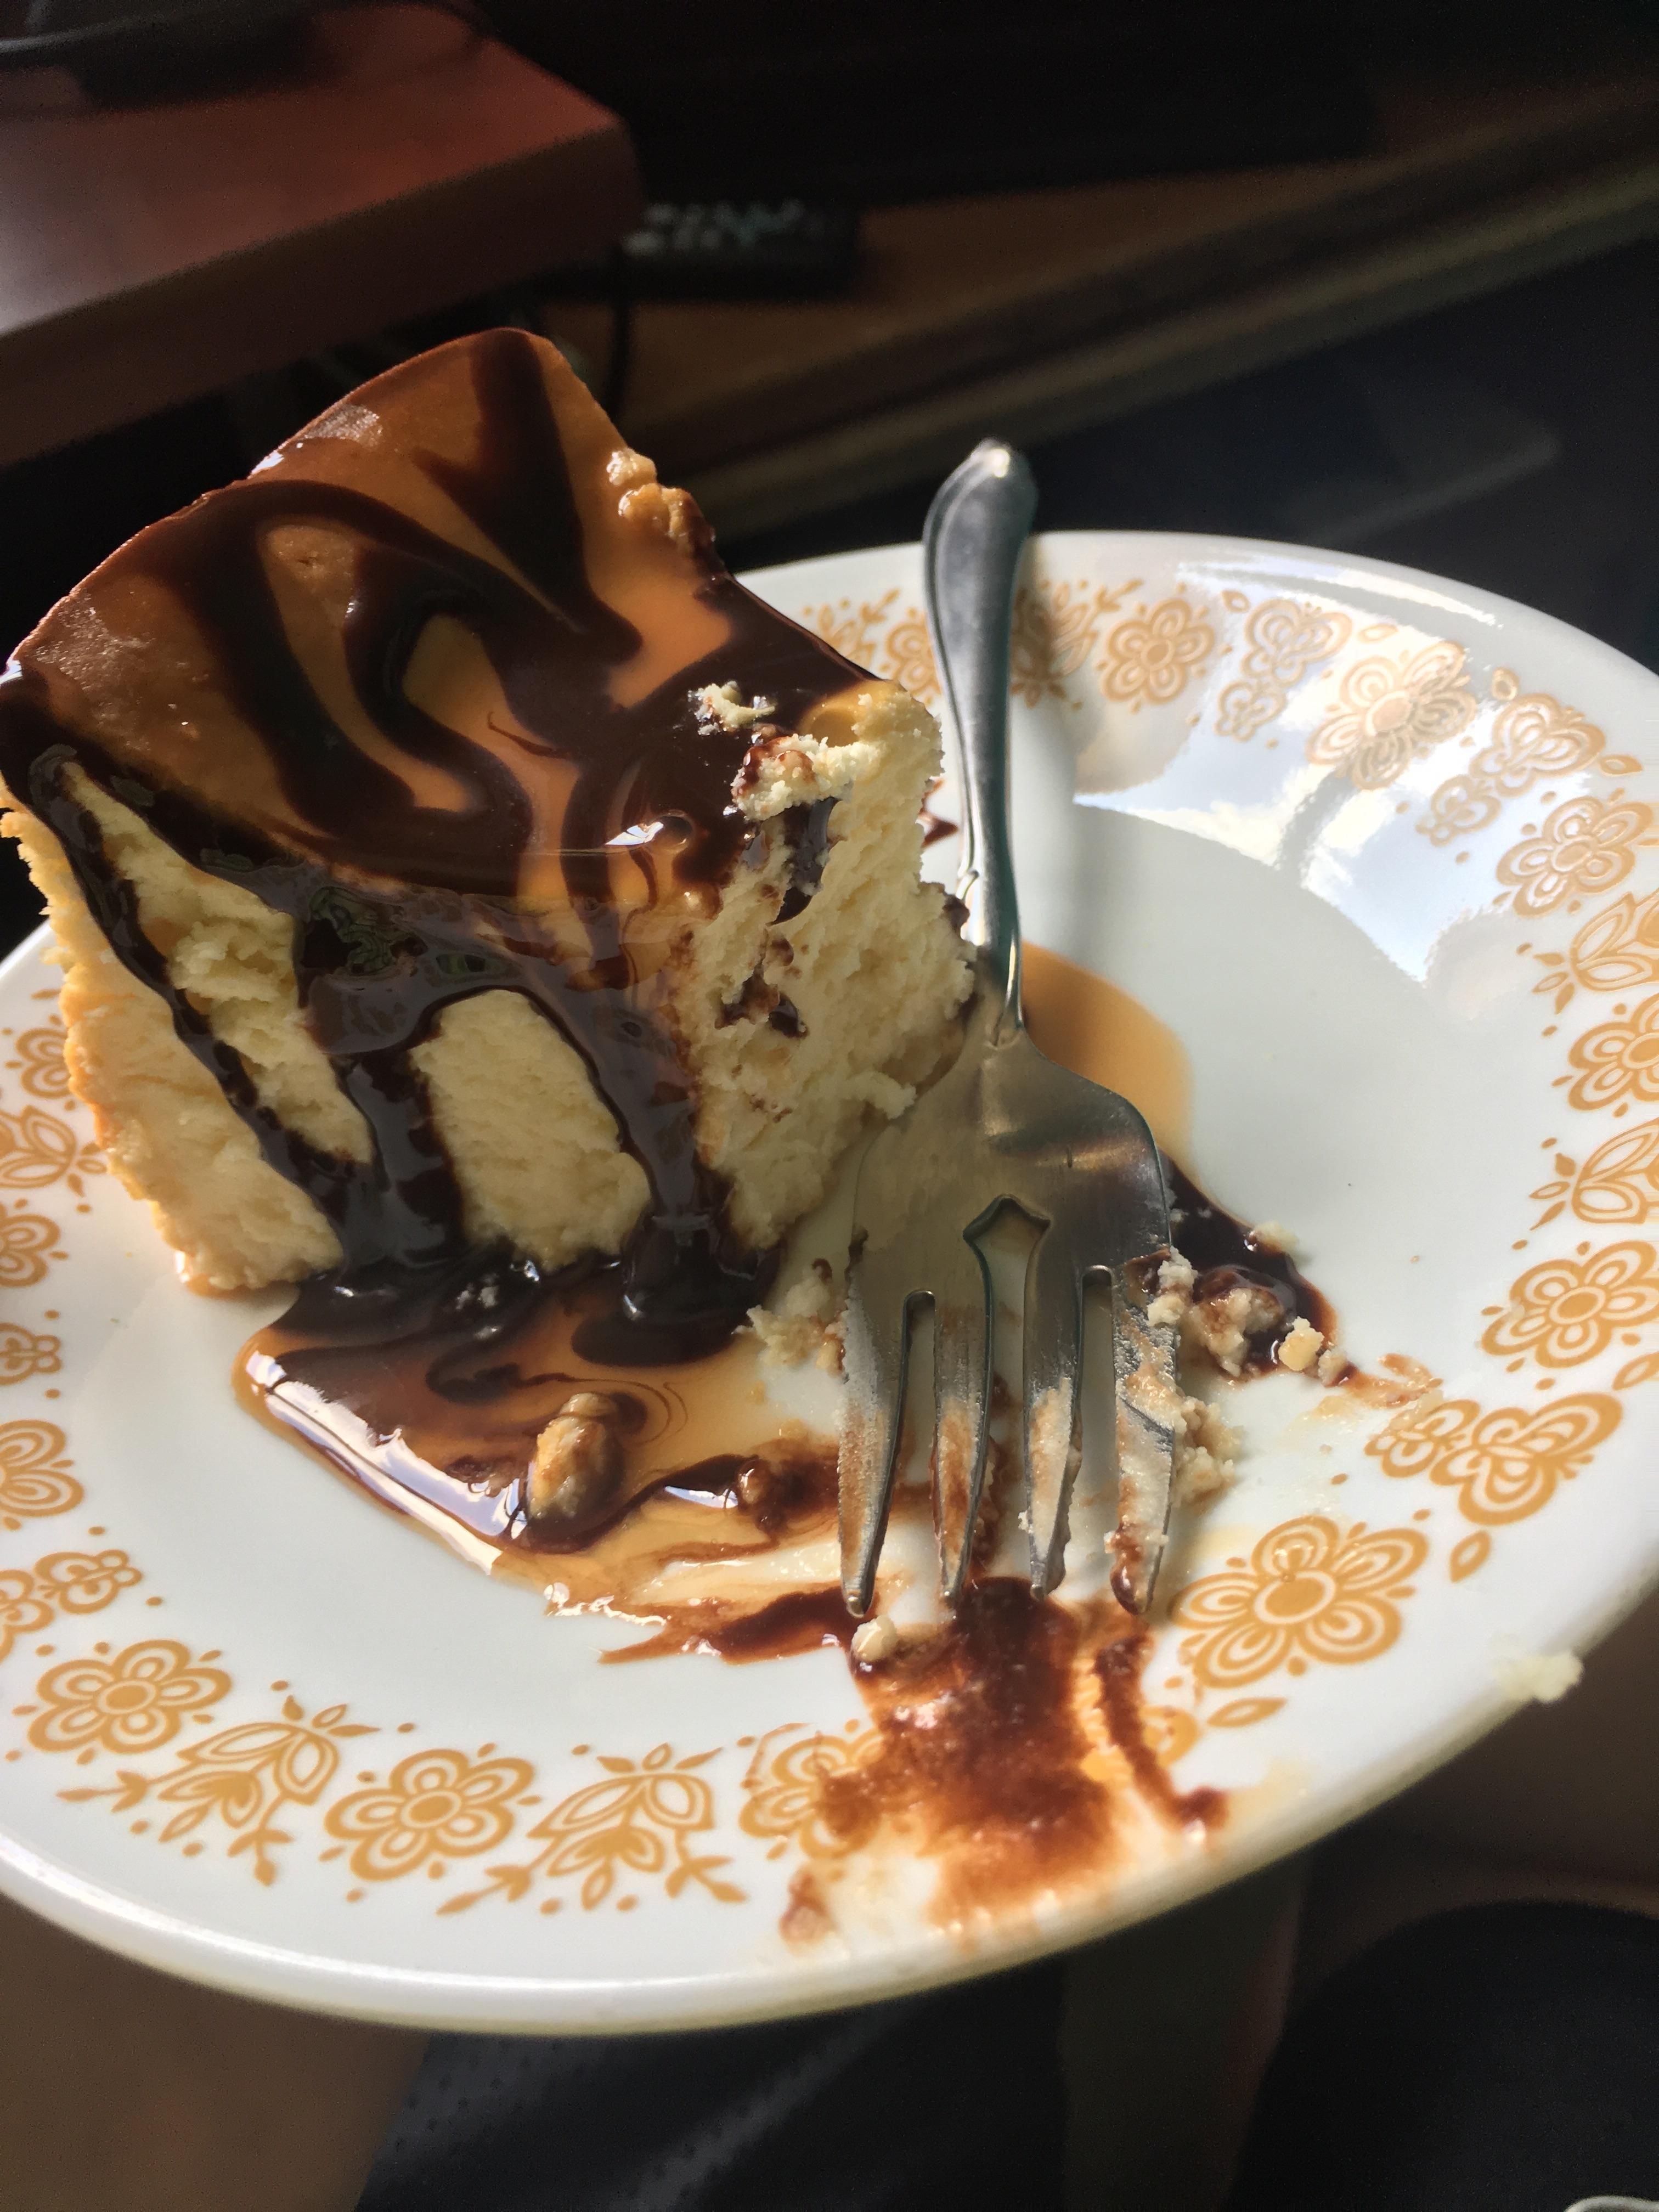 [Homemade] chocolate caramel cheesecake #recipes #food #cooking #delicious #foodie #foodrecipes #cook #recipe #health